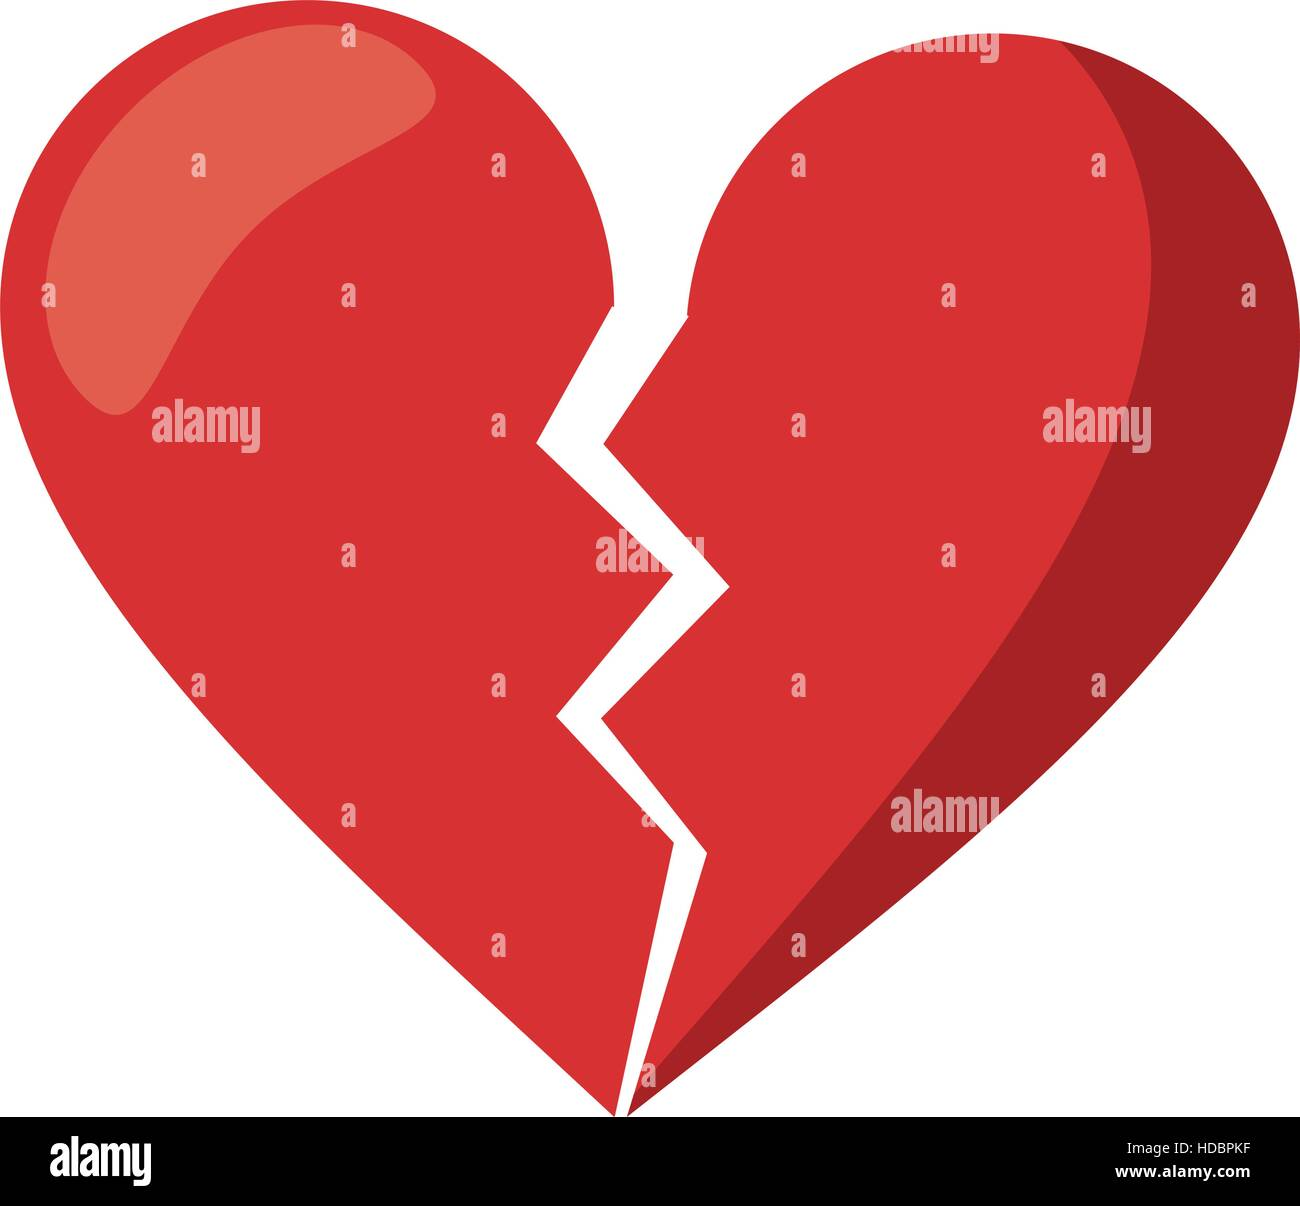 Red Heart Broken Sad Separation Stock Vector Image Art Alamy